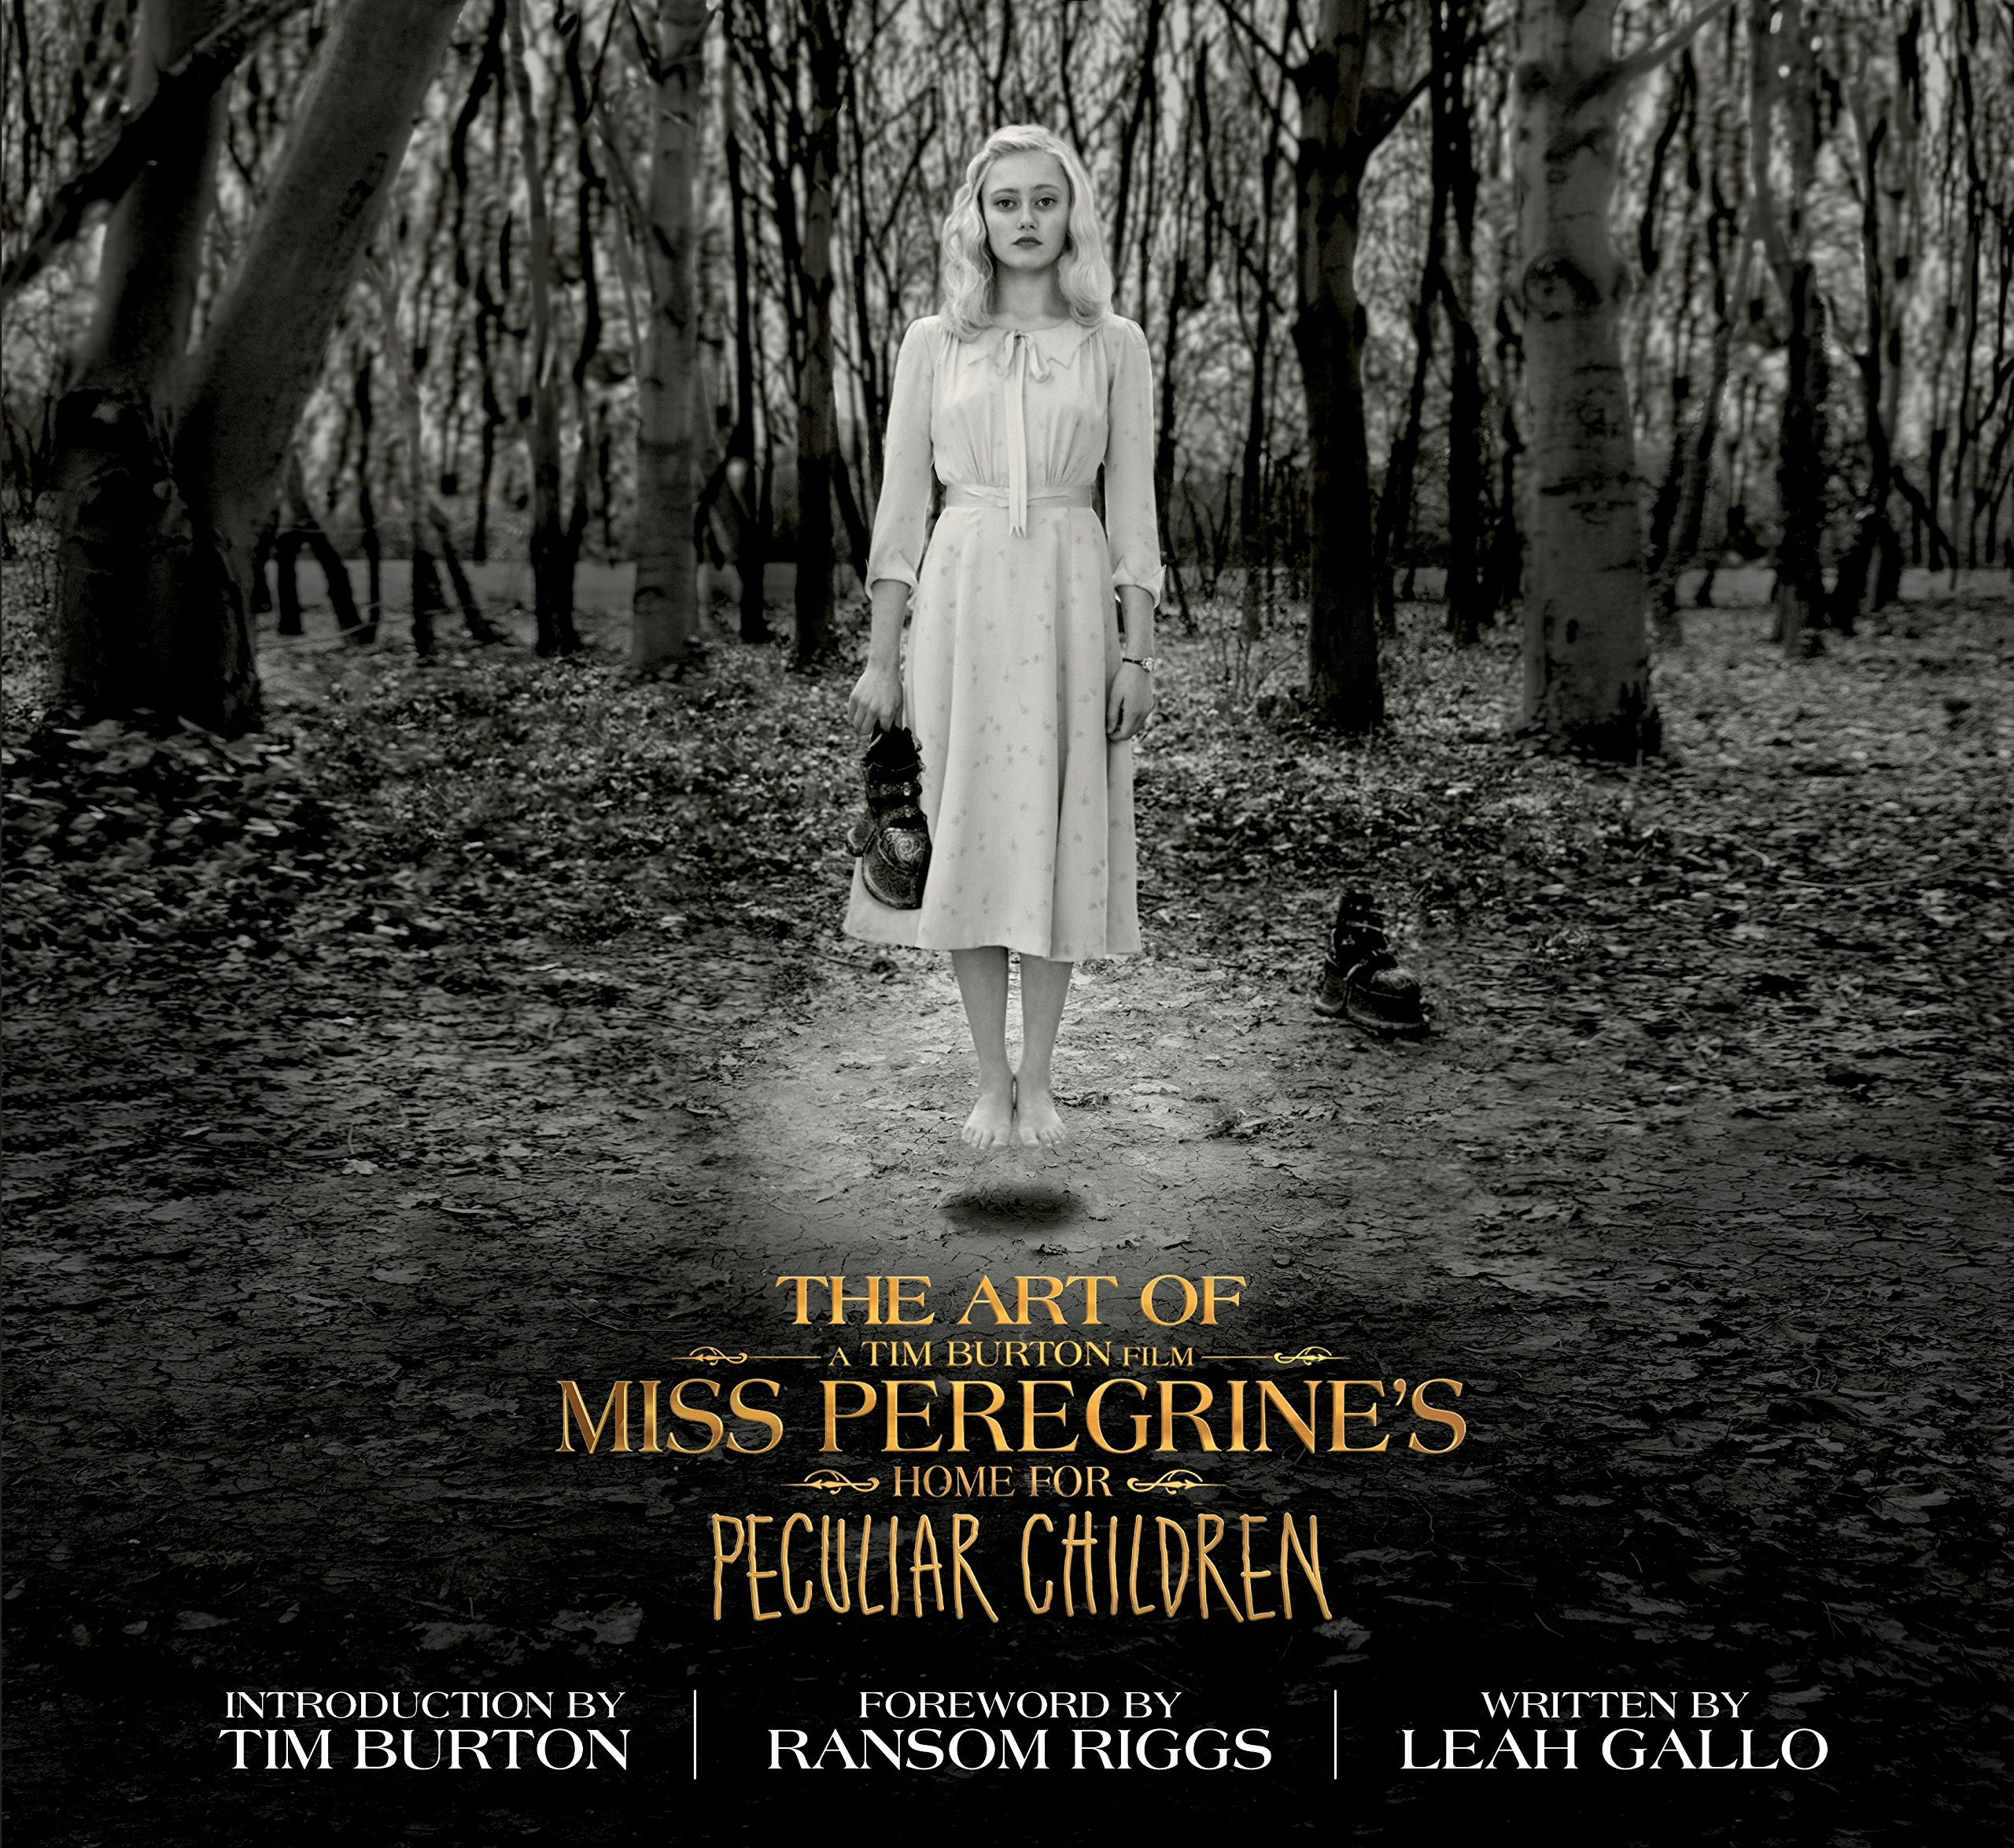 The Art of Miss Peregrine's Home for Peculiar Children (Miss Peregrine's Peculiar Children)